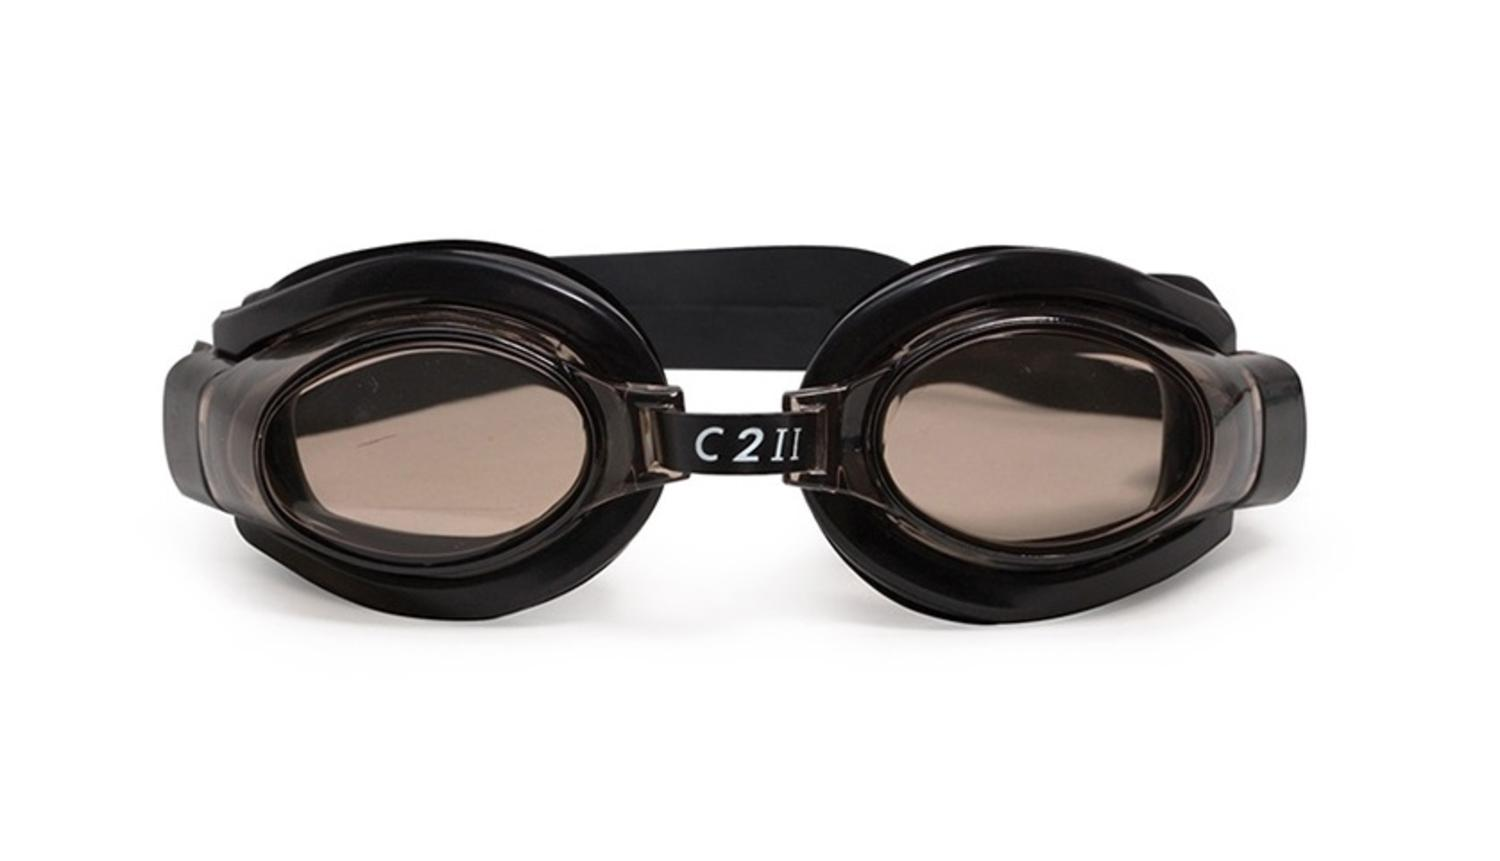 "6.5"" C2 II Water Sport Black Goggles Swimming Pool Accessory for Juniors, Teens and Adults by Swim Central"